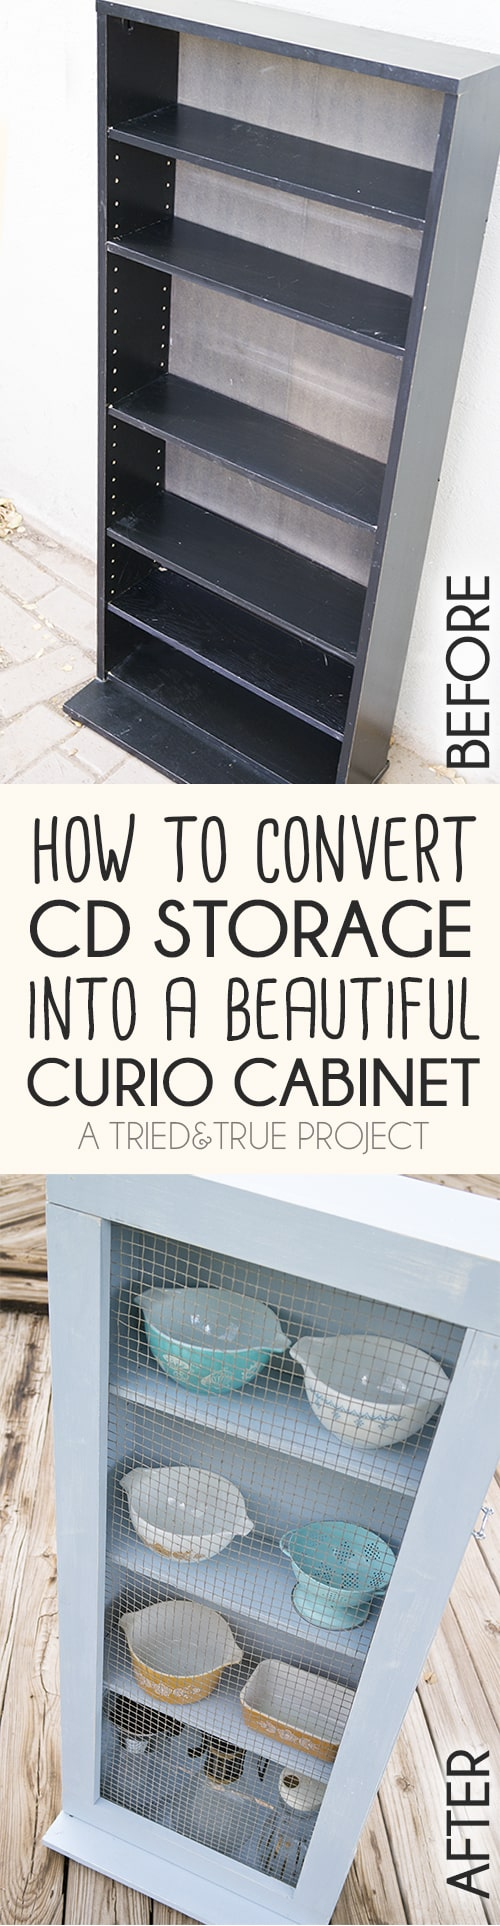 How to convert a thrifted CD storage shelf into an adorable farm house chic cabinet!